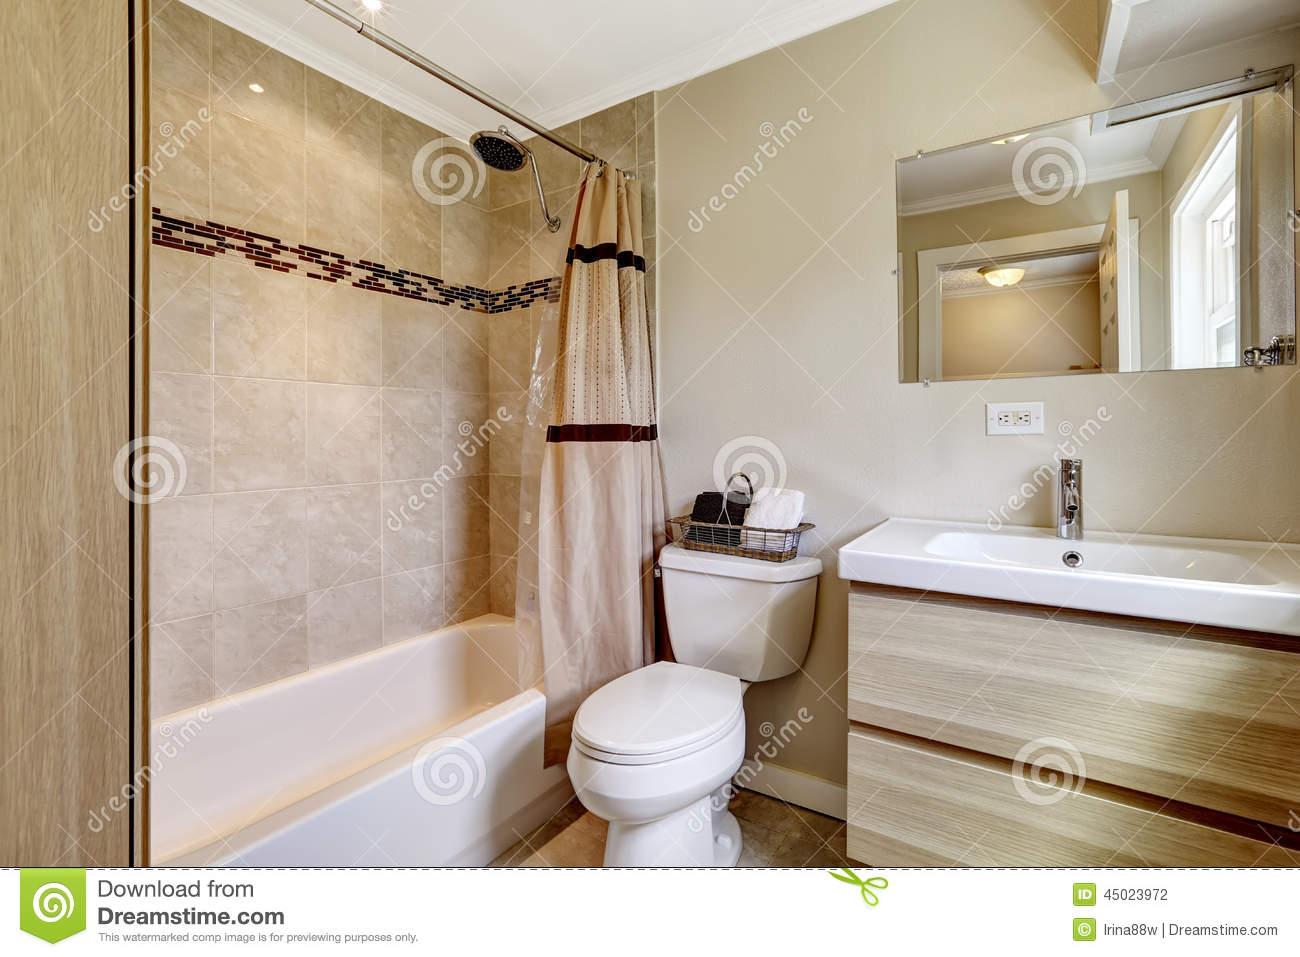 Bathroom With Beige Tile Trim Stock Photo - Image: 45023972